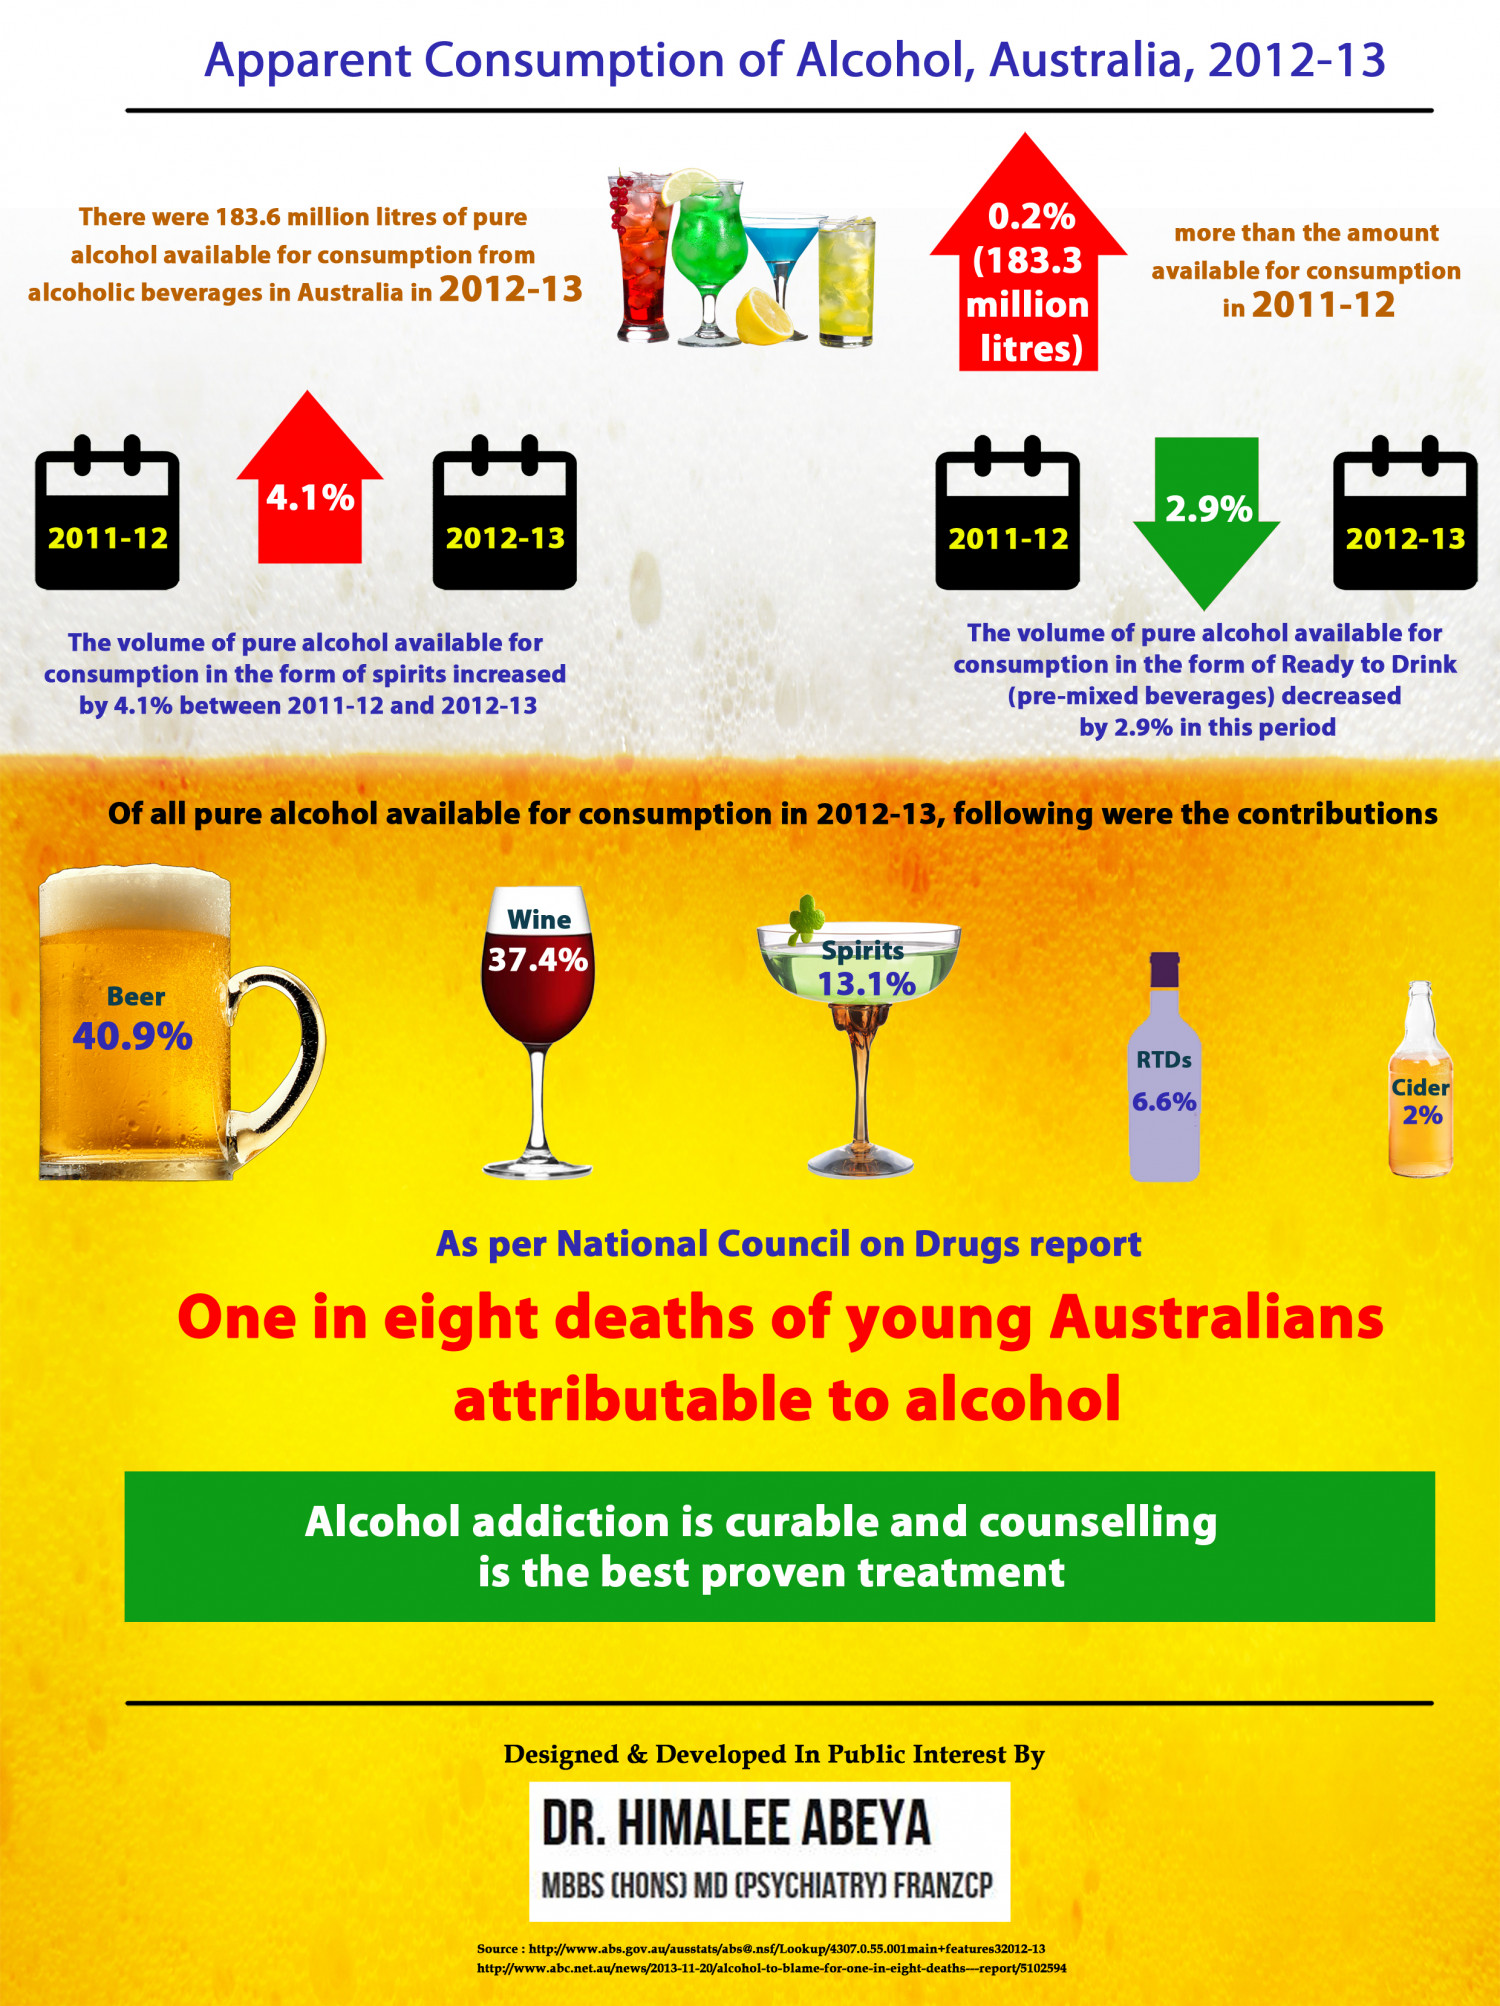 Apparent Consumption of Alcohol, Australia, 2012-13 Infographic